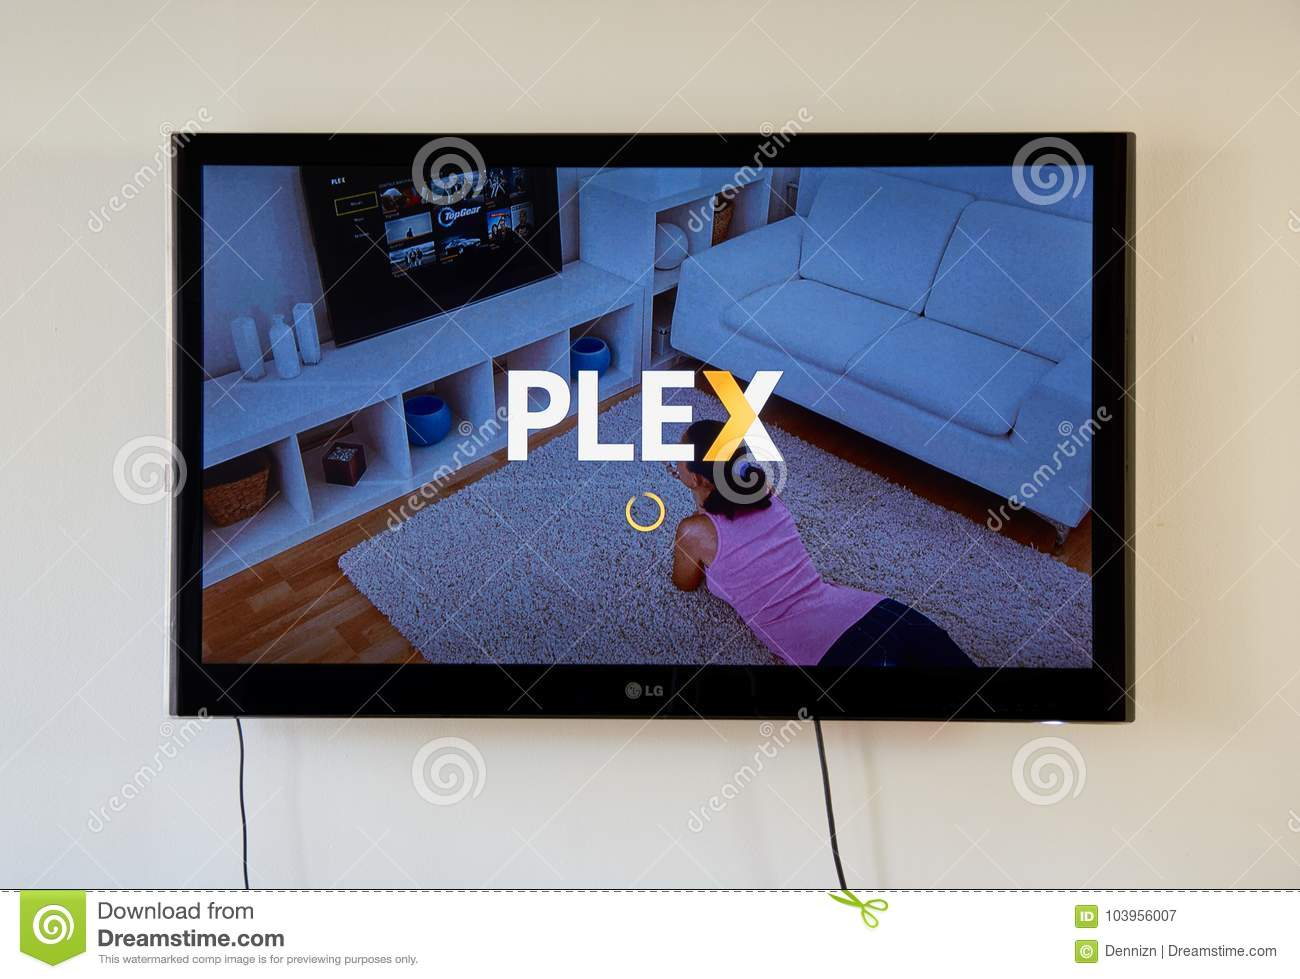 Plex App And Logo On LG TV Screen  Editorial Photography - Image of